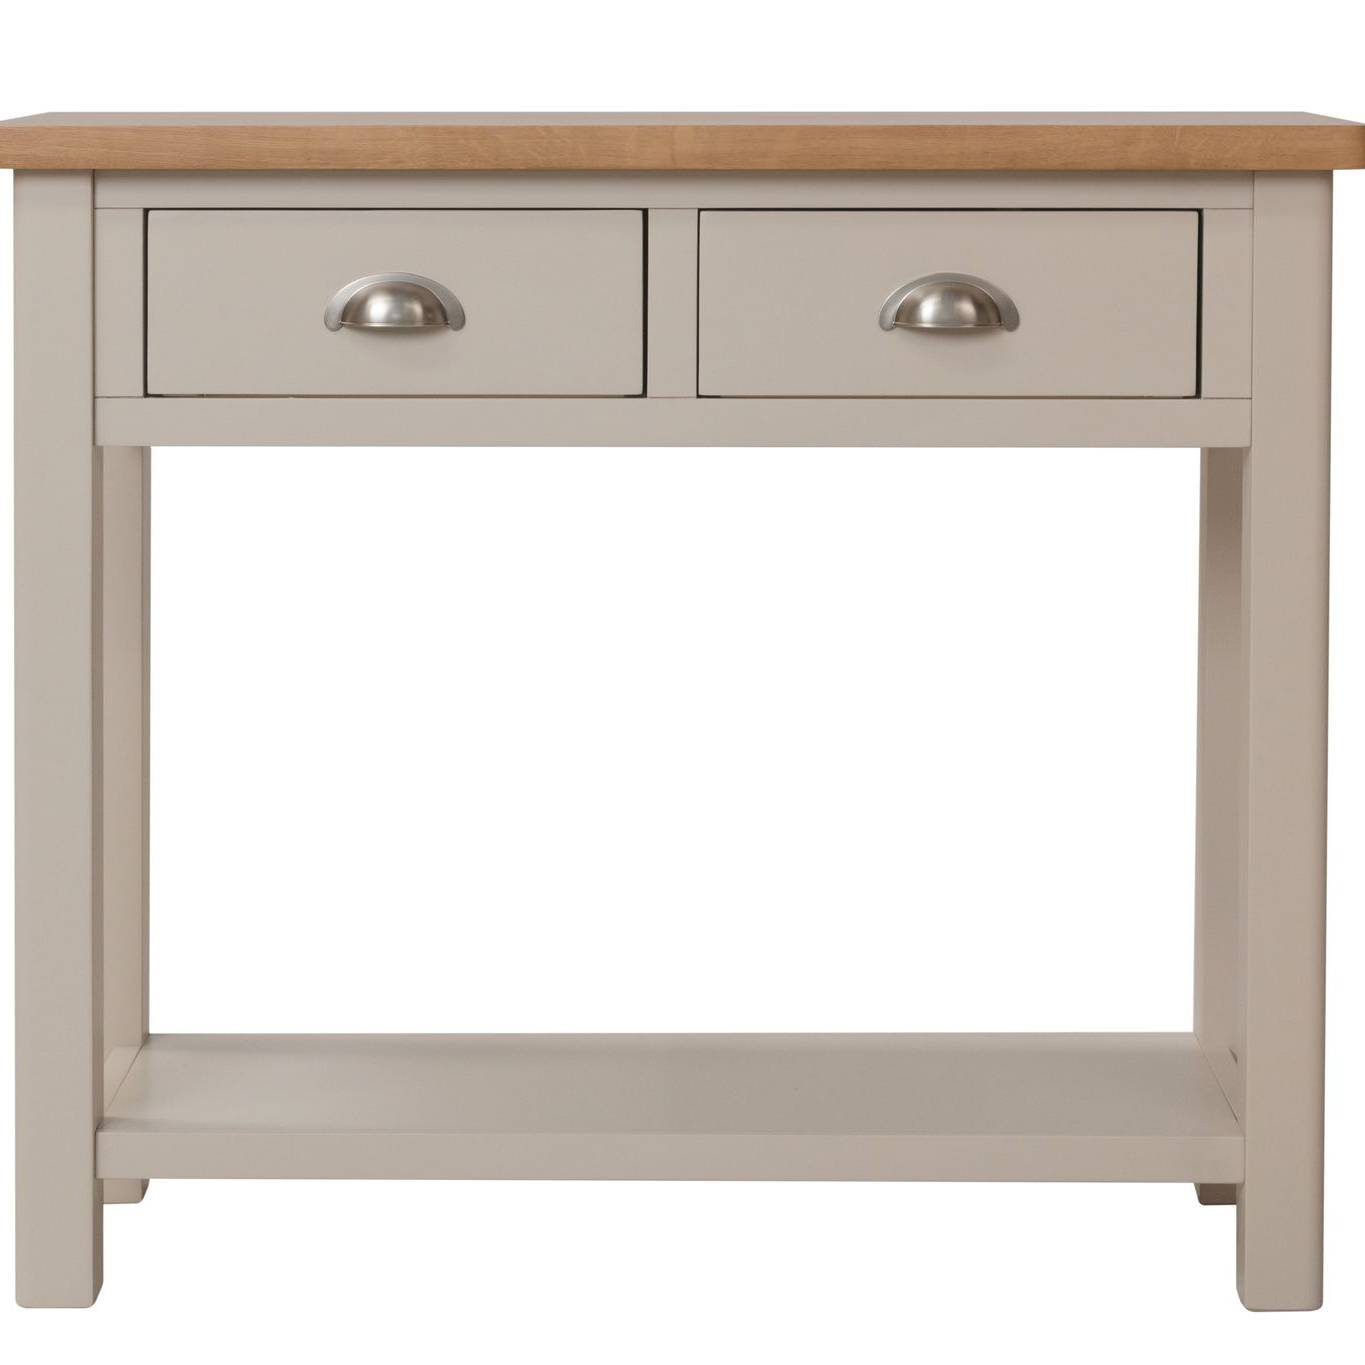 The Truffle - Console Table